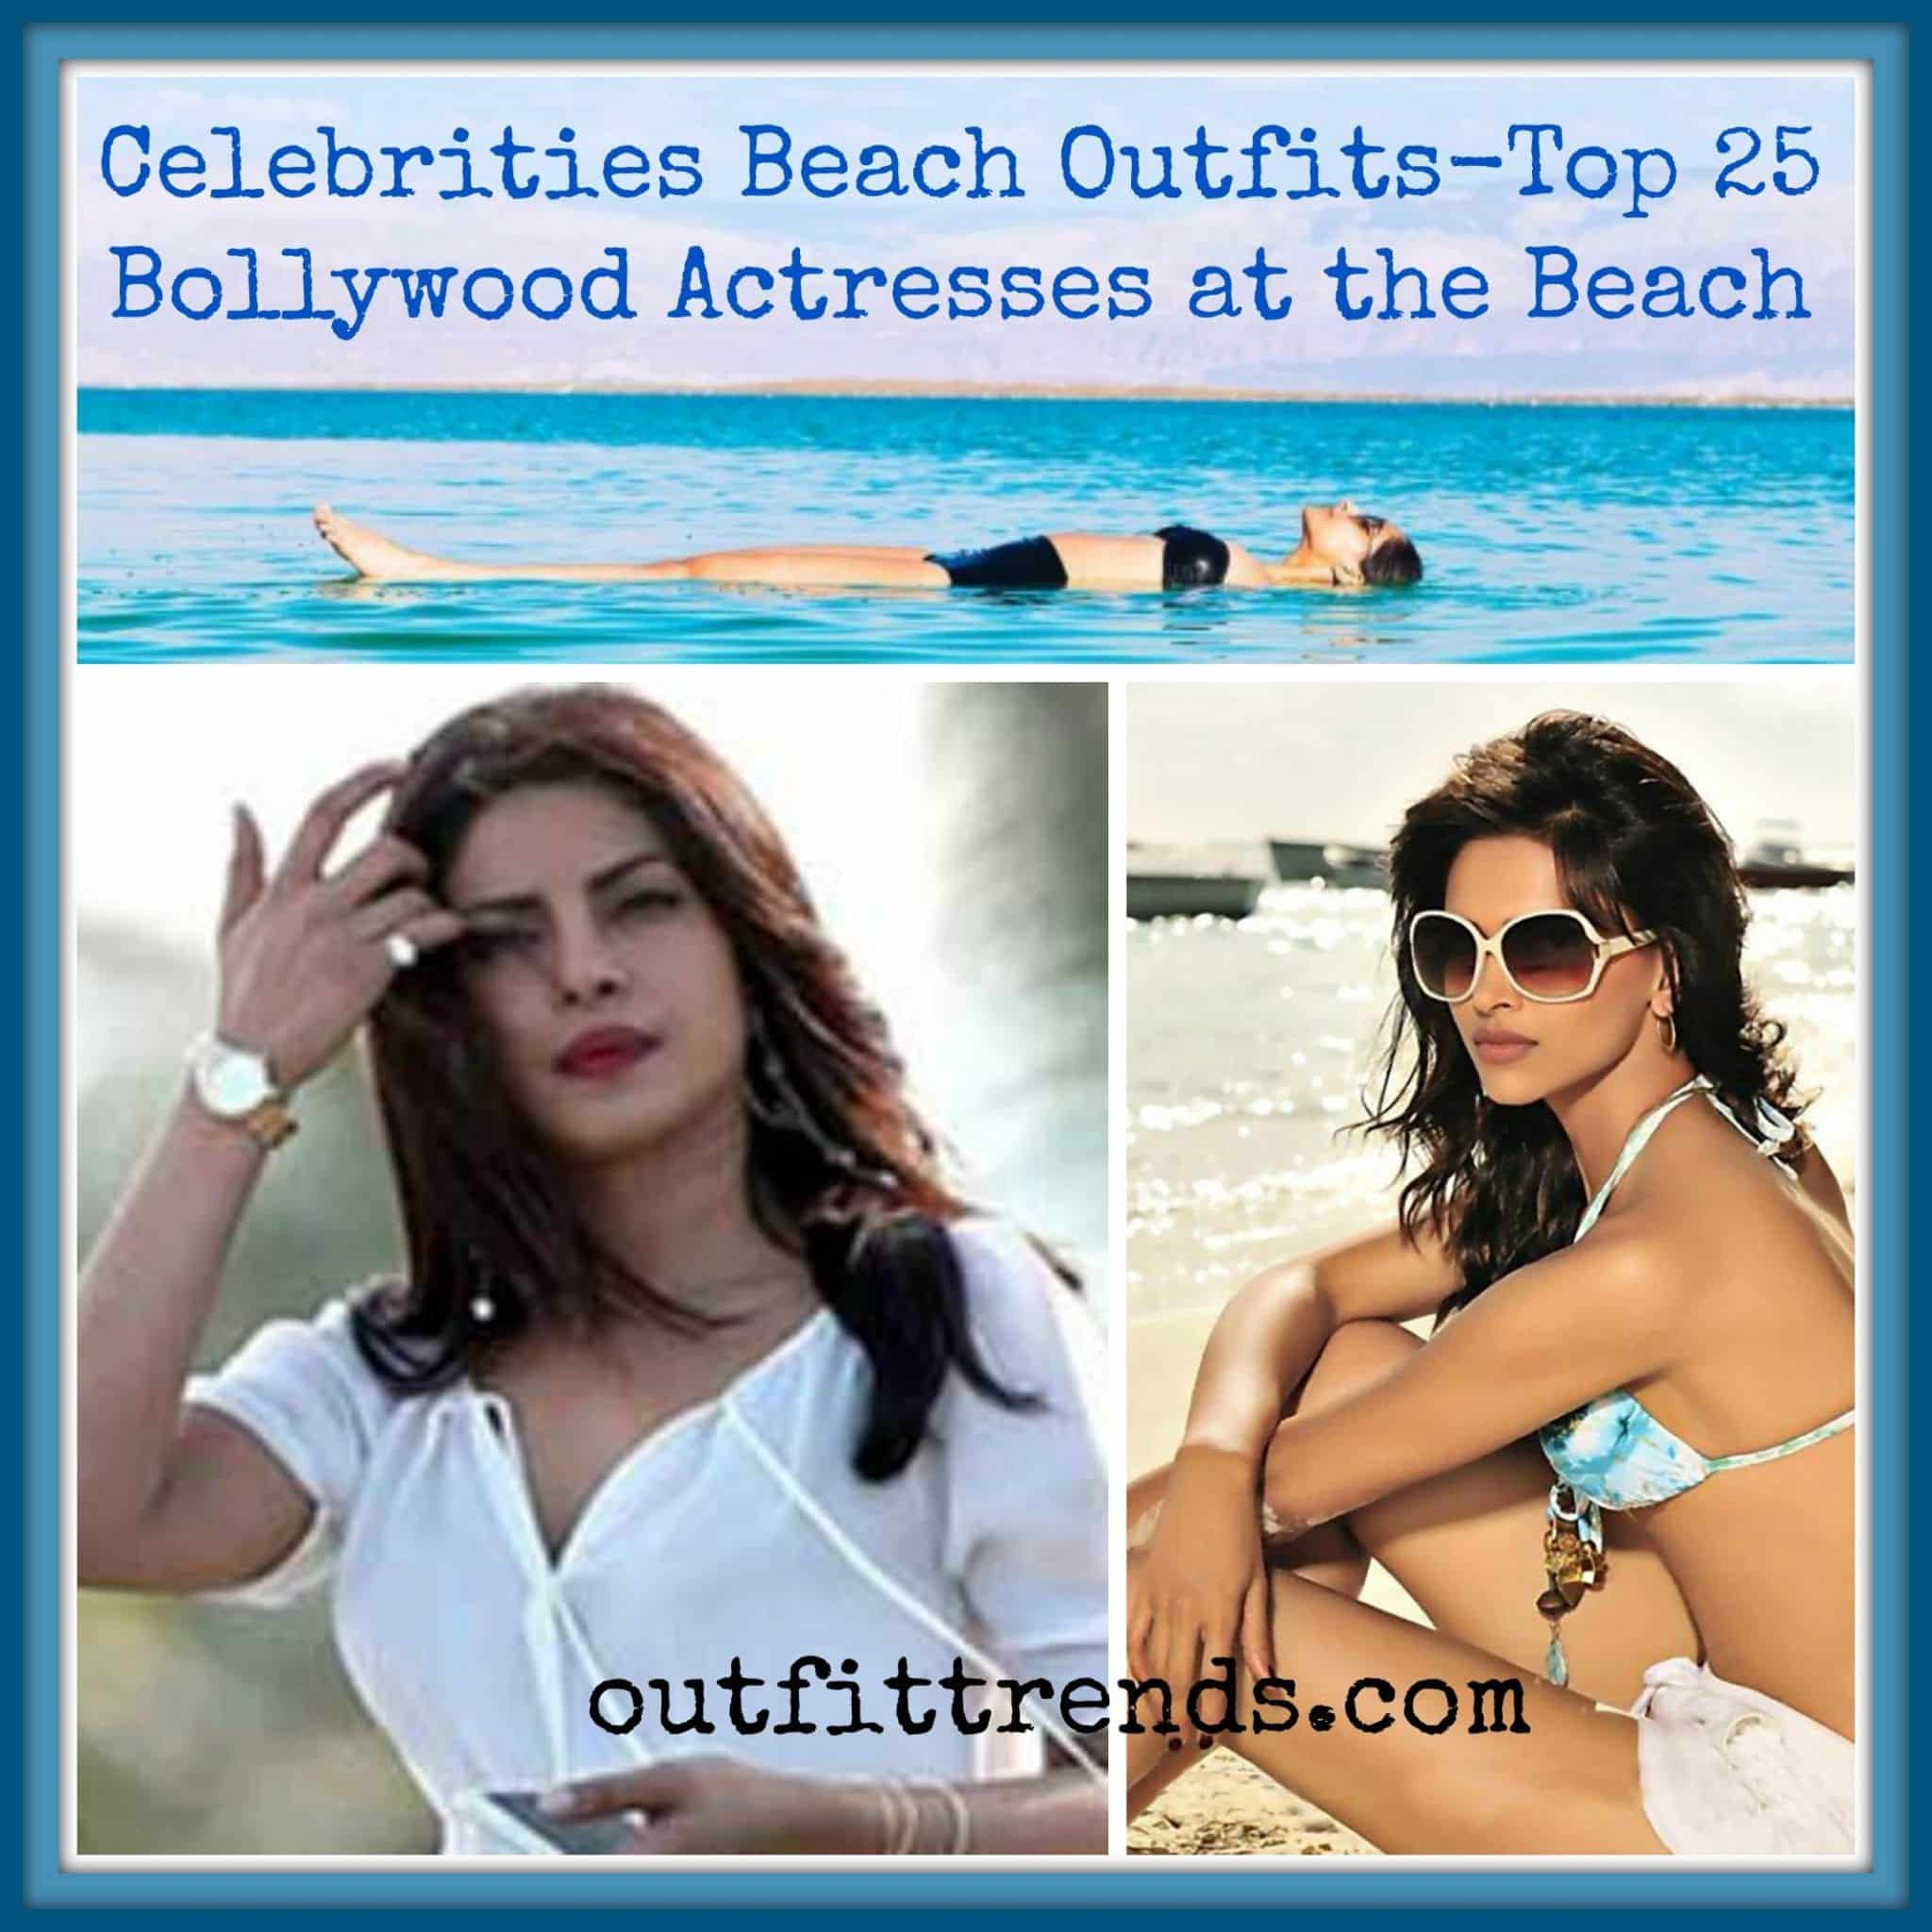 bollywood-actresses-beach-outfits Bollywood Celebrities Beach Outfits-25 Indian Actress Beachwear